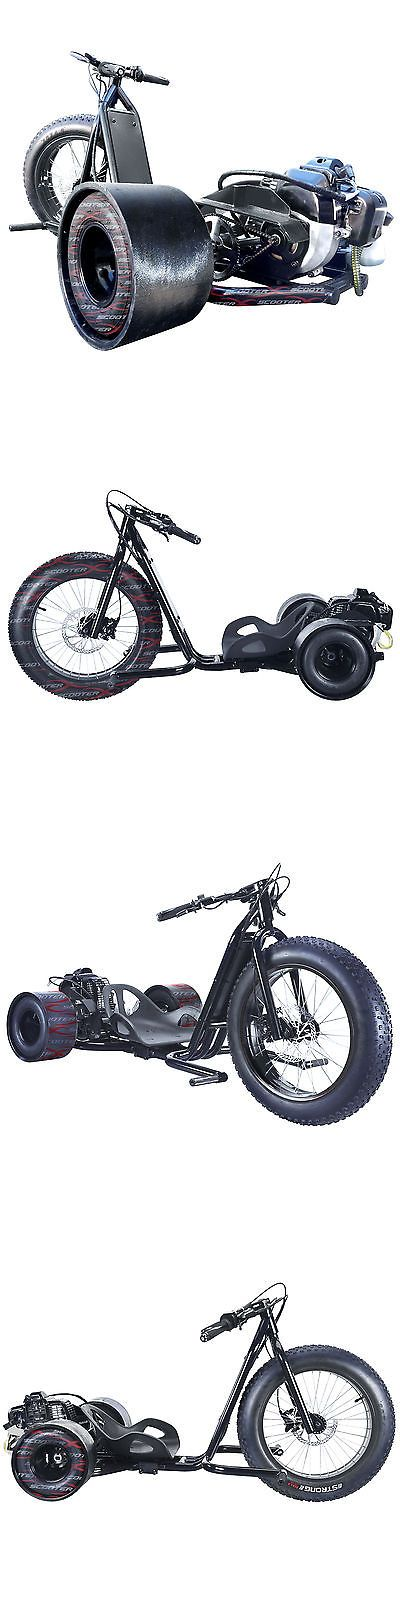 Gas Scooters 75211: Fast 49Cc 30Mph Black Scooterx Drifting Big 3 Wheel Gas Powered Drift Trike -> BUY IT NOW ONLY: $830.99 on eBay!